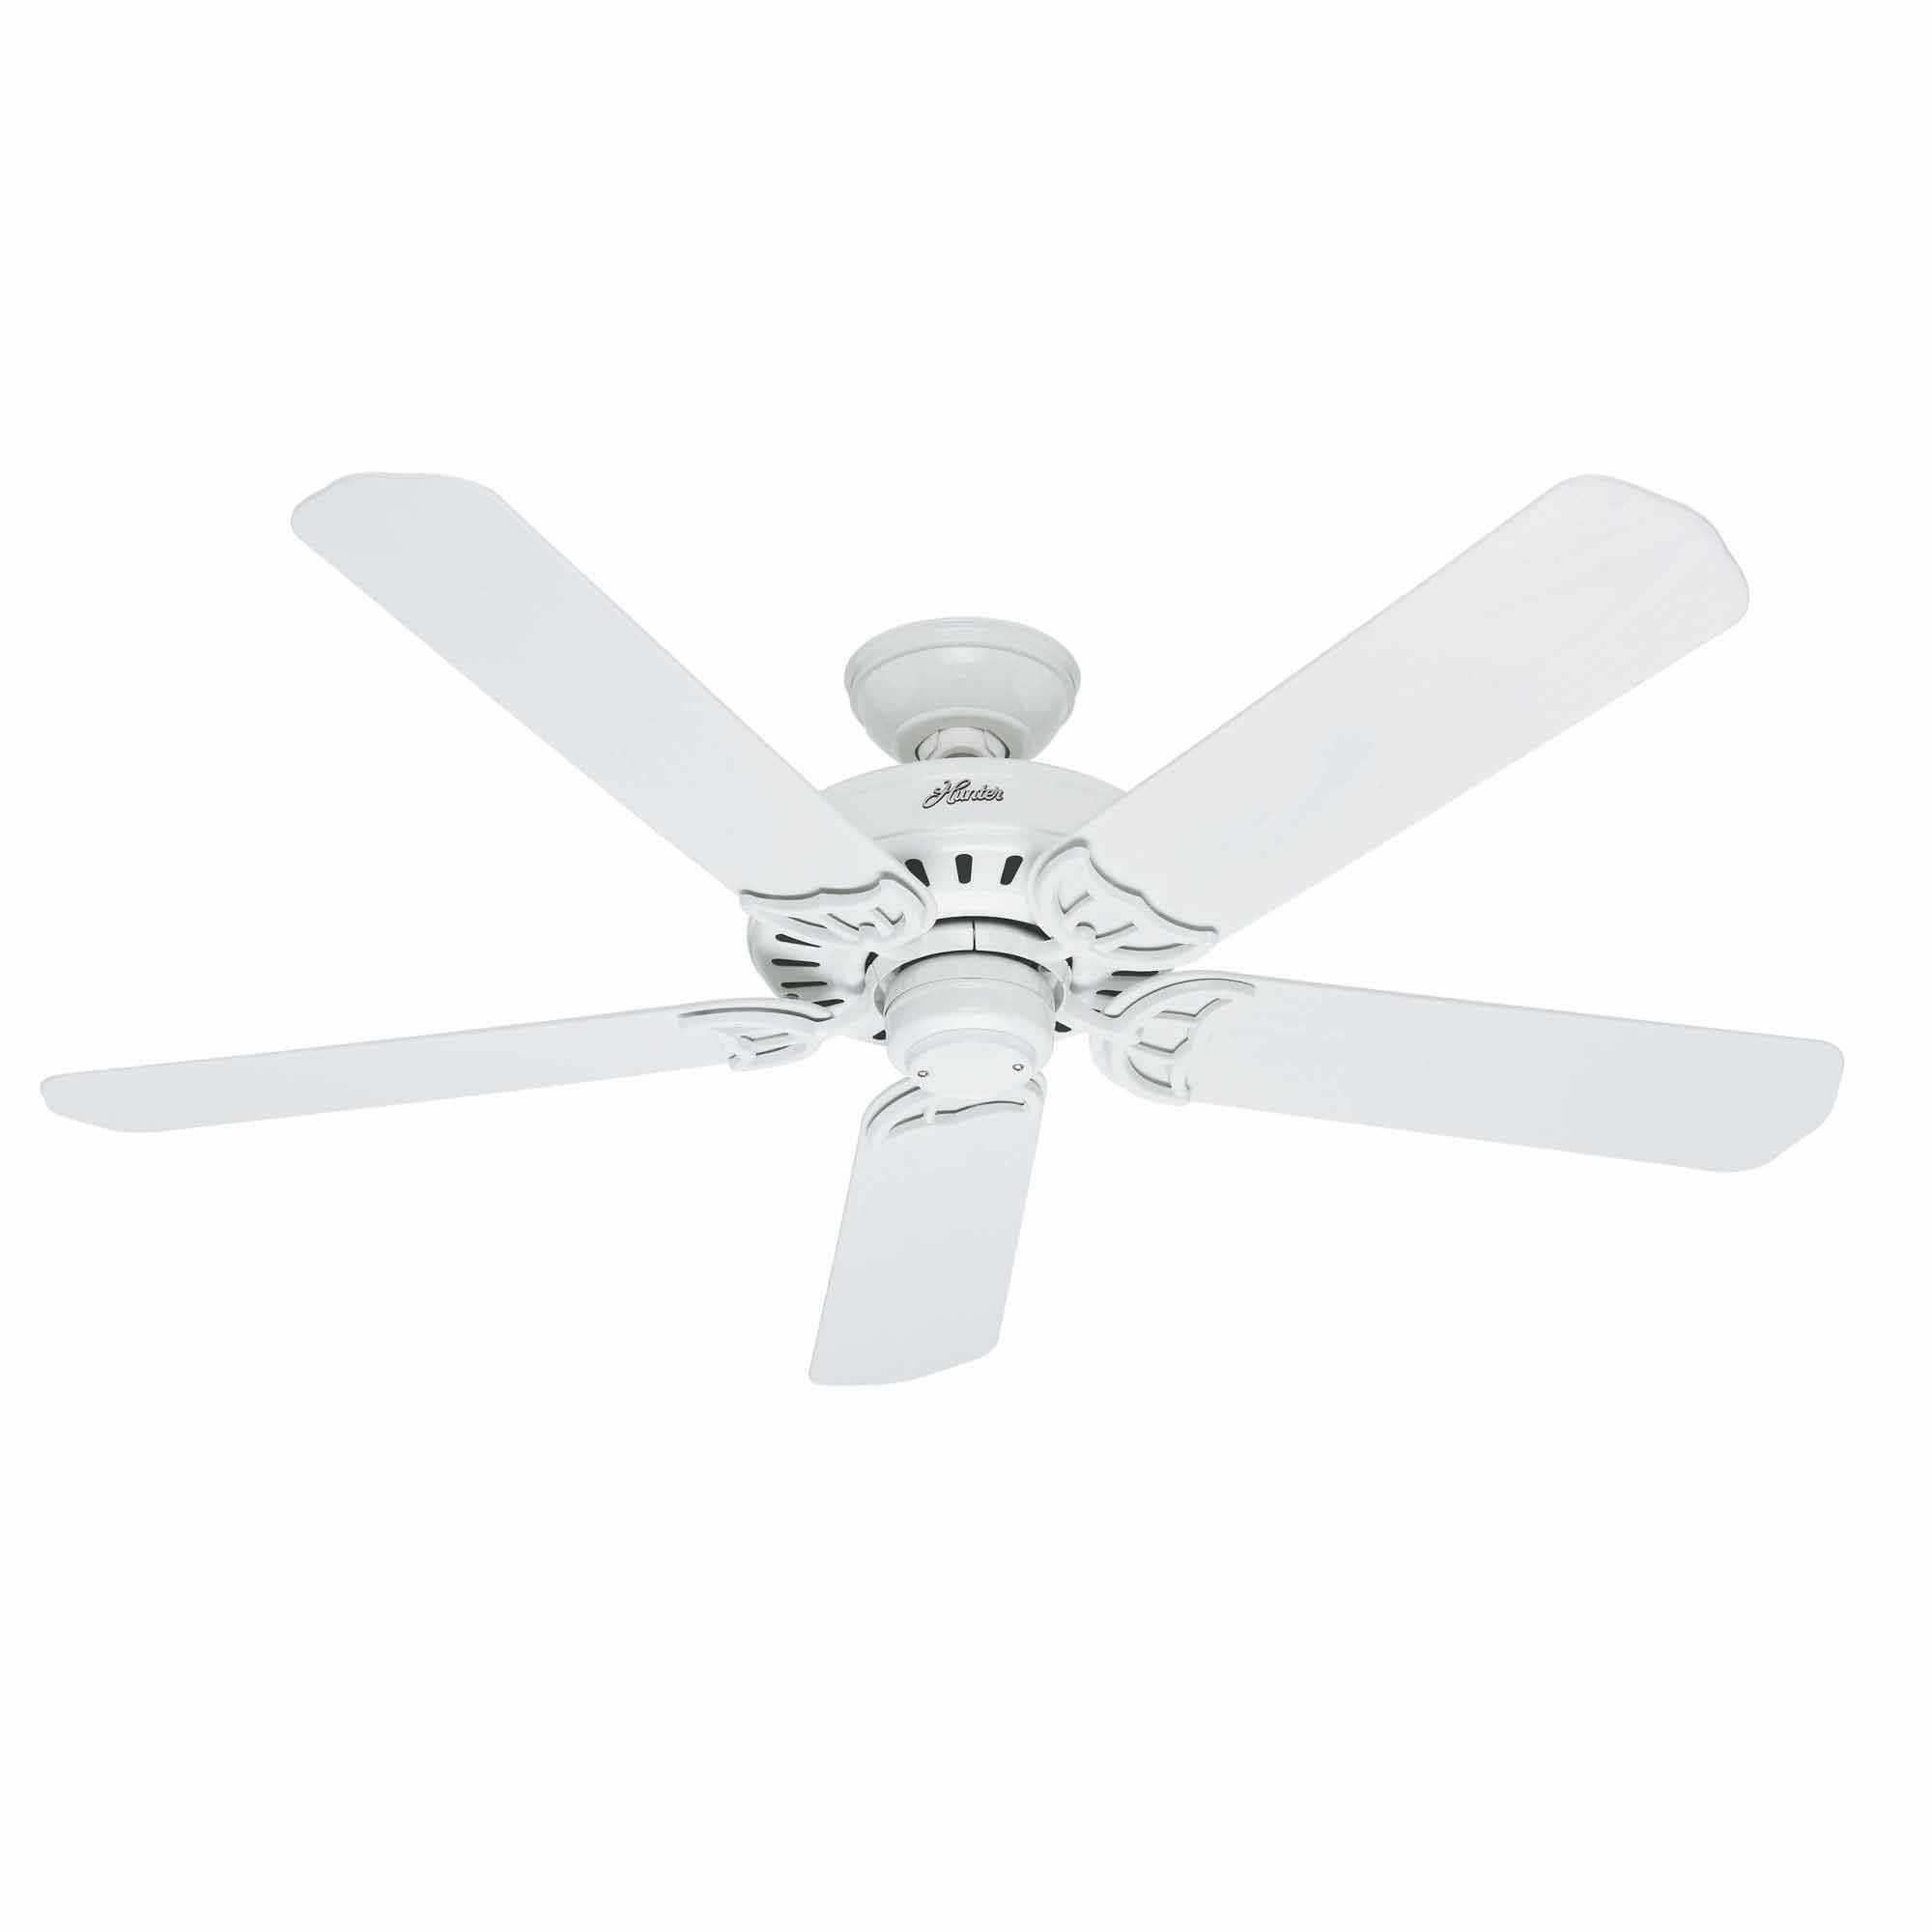 hight resolution of details about hunter 53125 52 energy star rated in outdoor ceiling fan 5 blades included